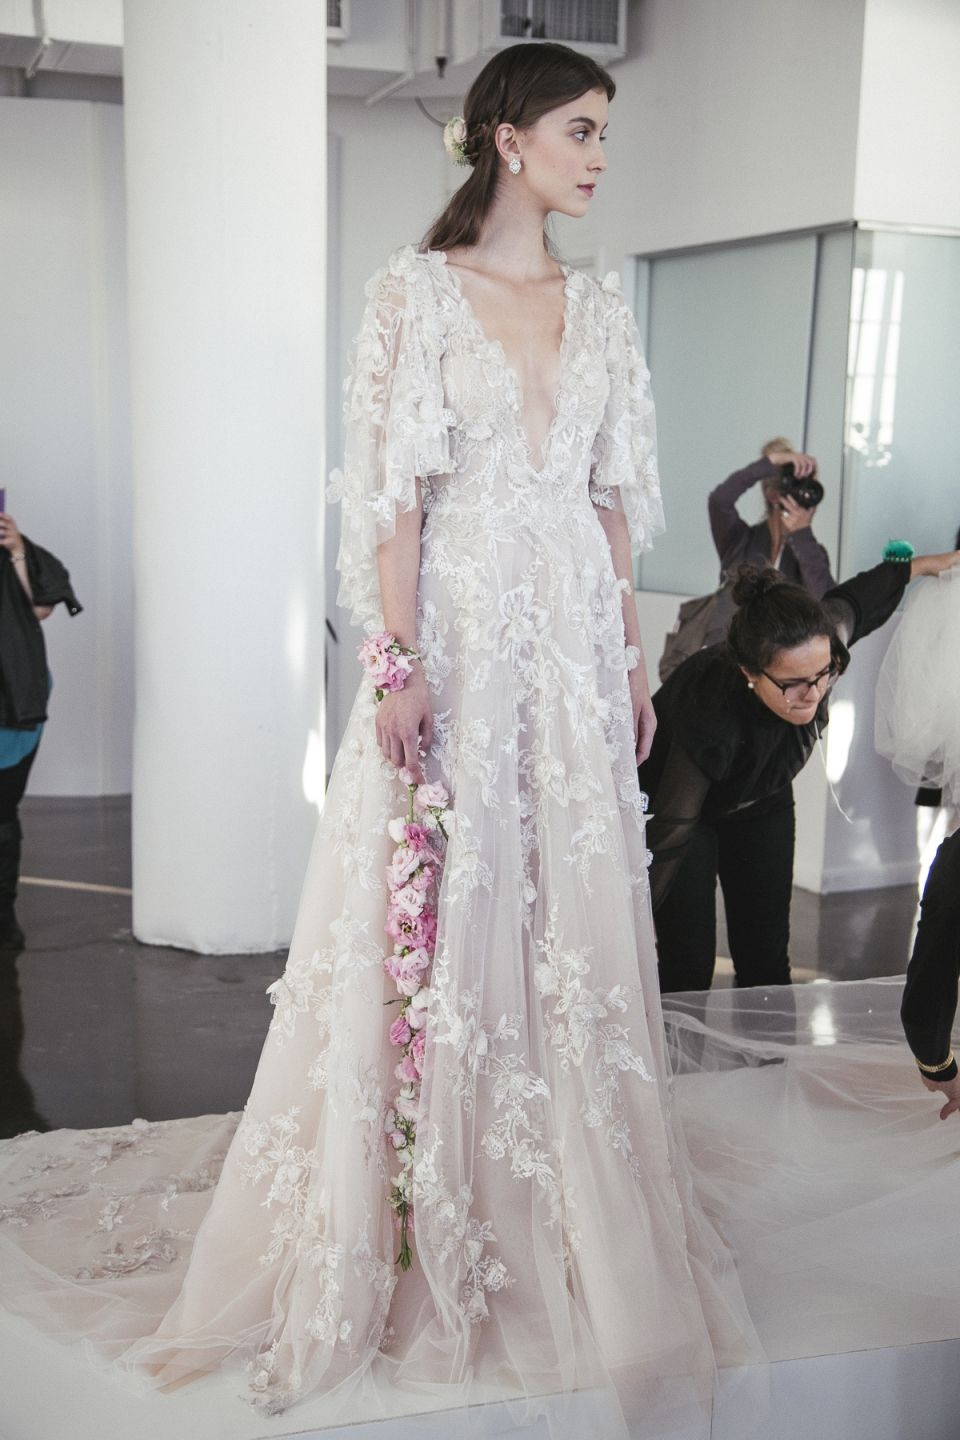 Ethereal Gowns   Backstage   Marchesa Fall 2017 Bridal   Photo The LANE 0511b60fcbcf